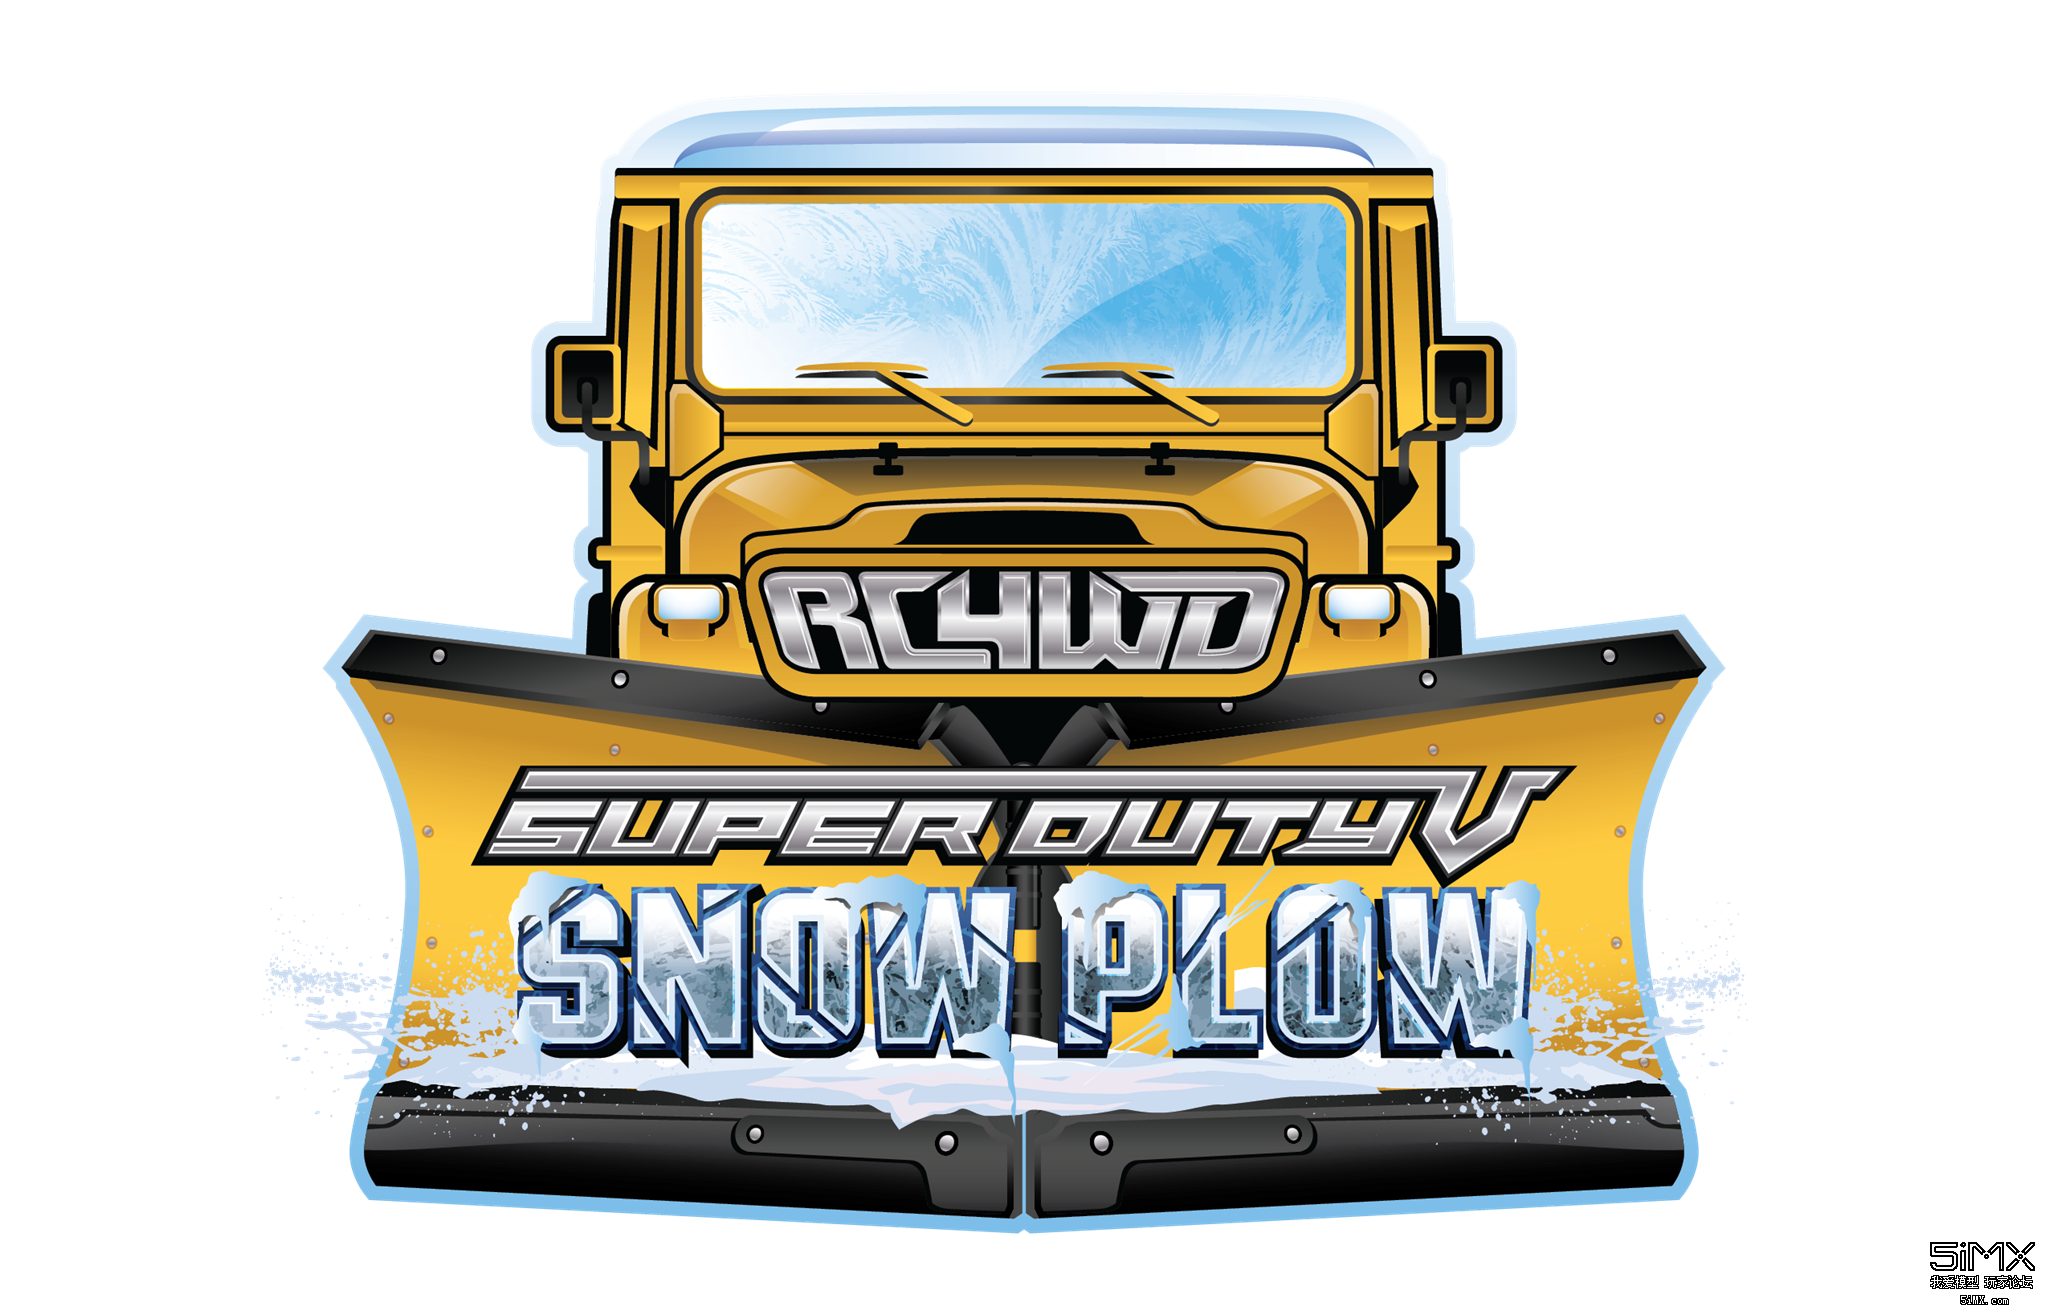 SNOW PLOW_Full.png